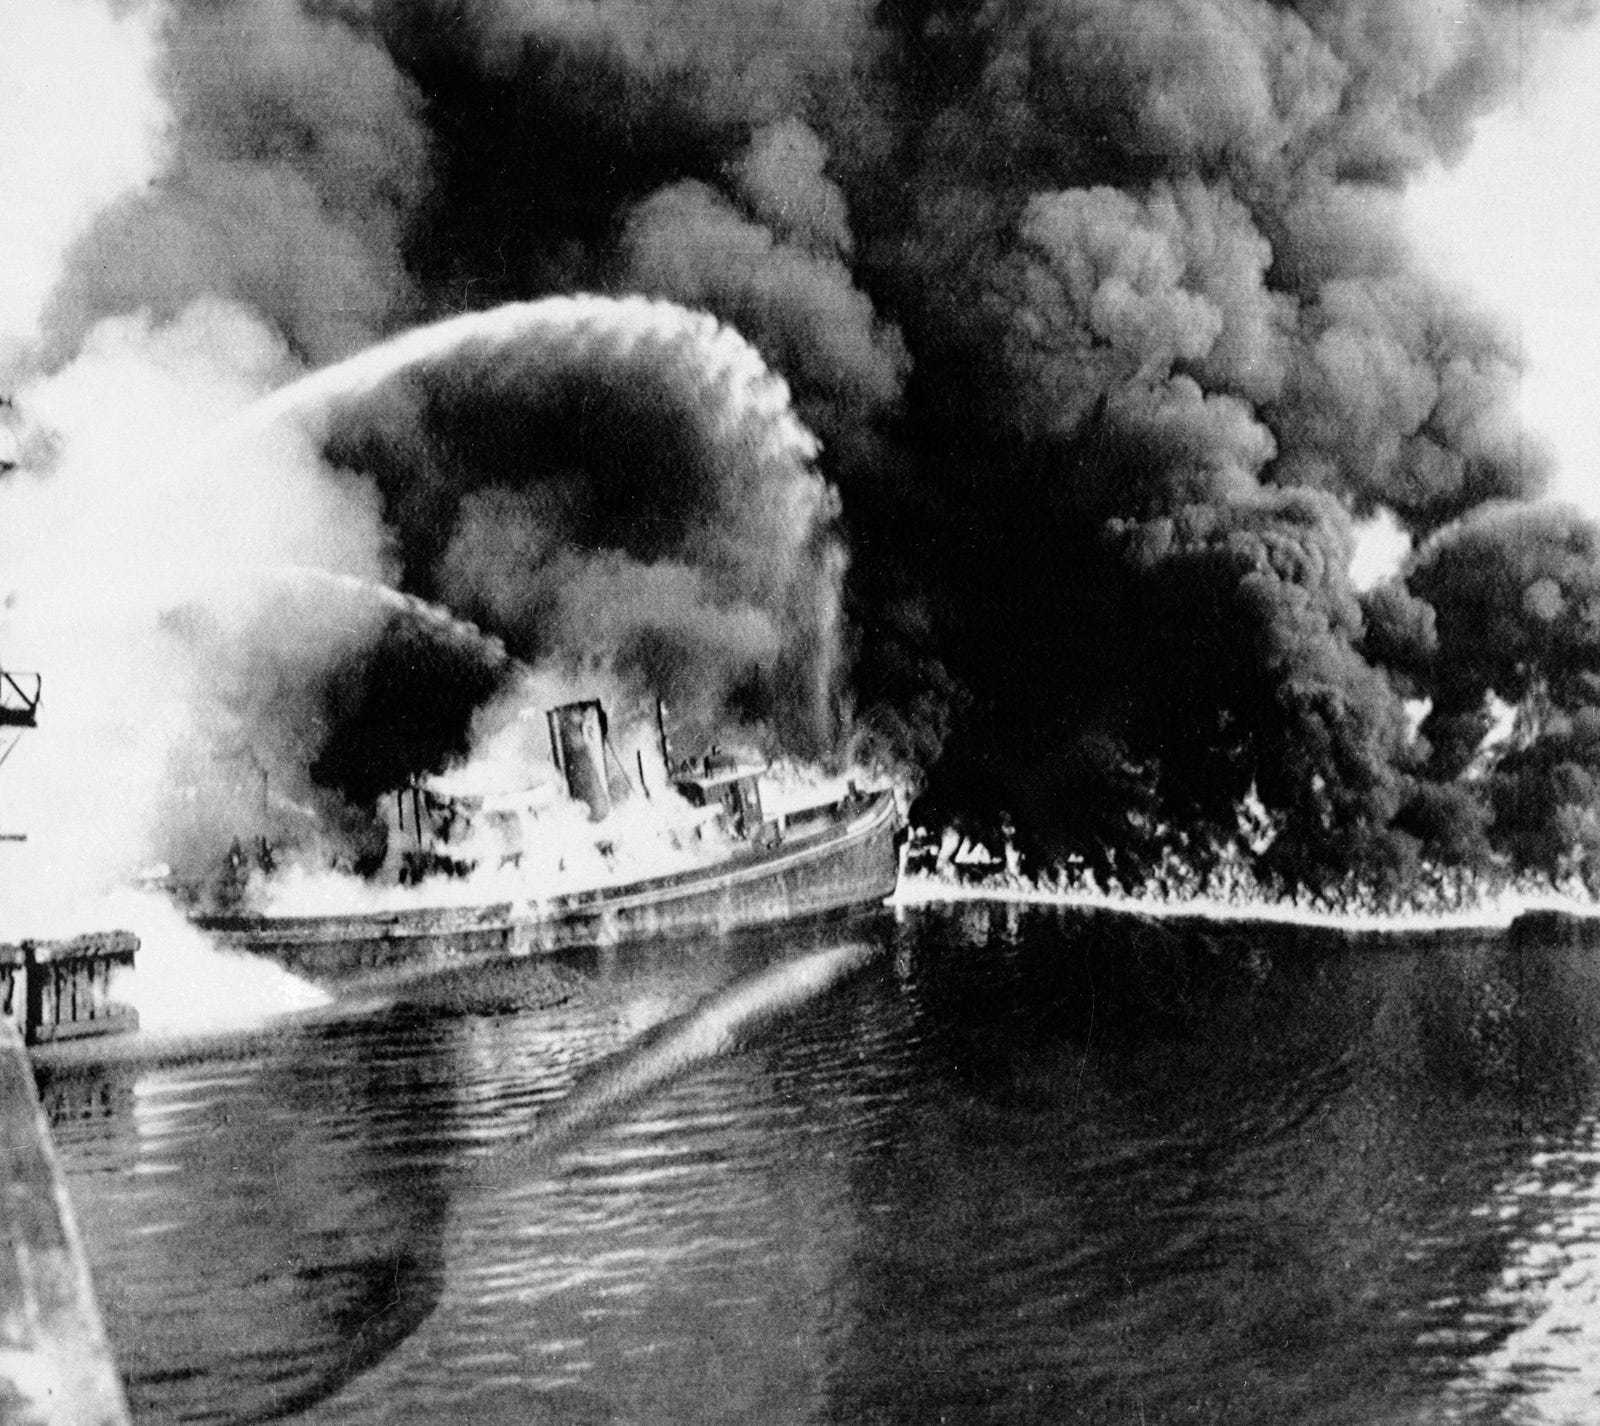 A boat battles flames on the Cuyahoga River near downtown Cleveland in June 1952. The industrially ravaged river burned regularly throughout the middle of the last century, but the fire that ignited in June 1969 after a spark dropped from a passing train became national news.